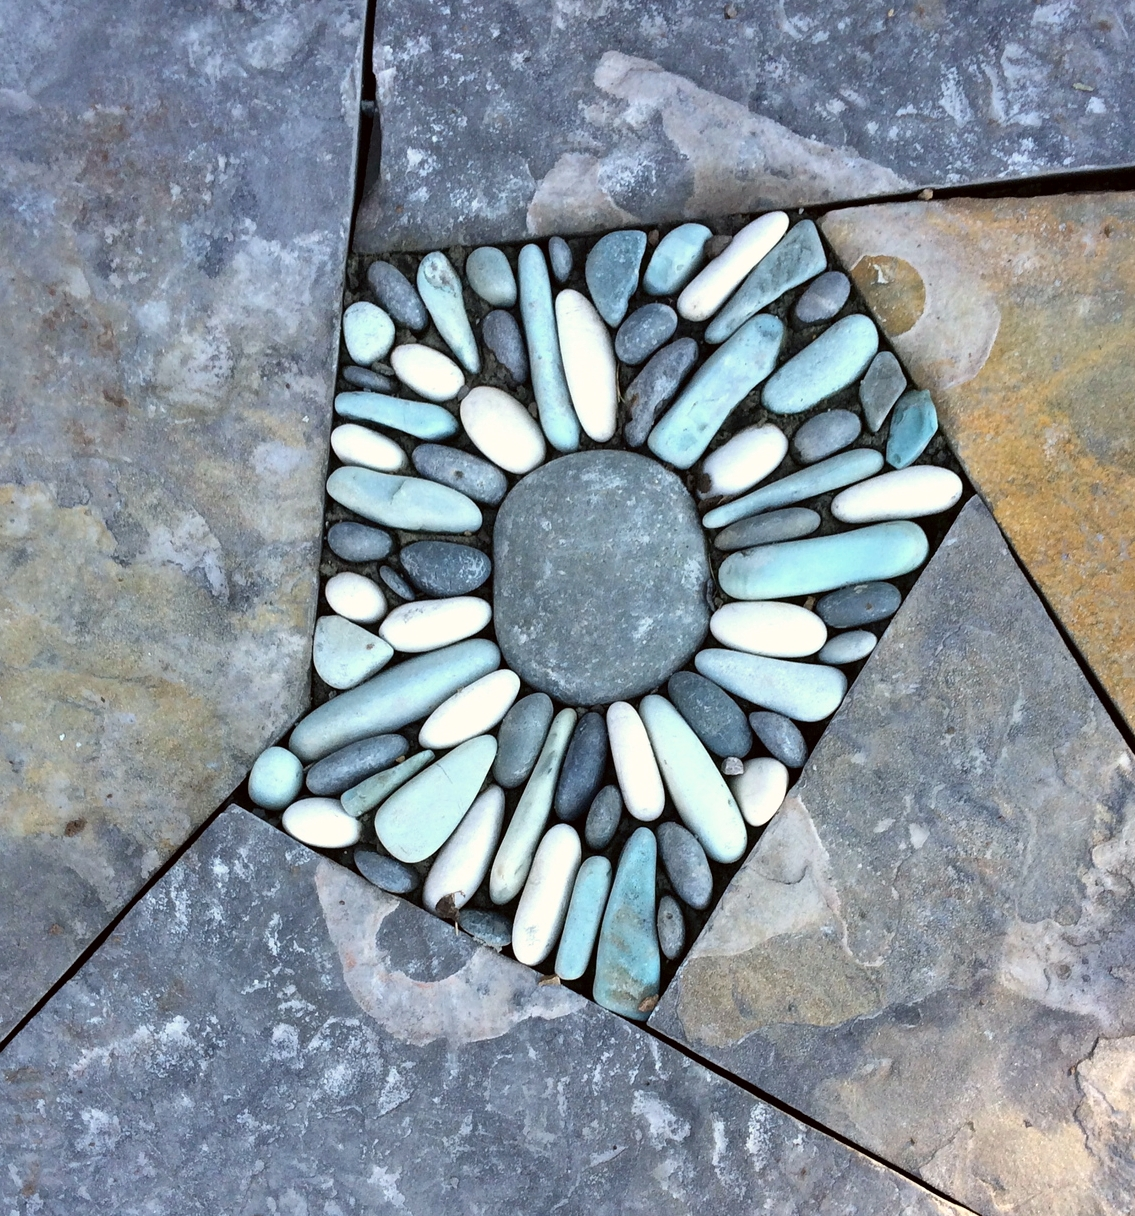 pebble inlay in a dry laid flagstone walk